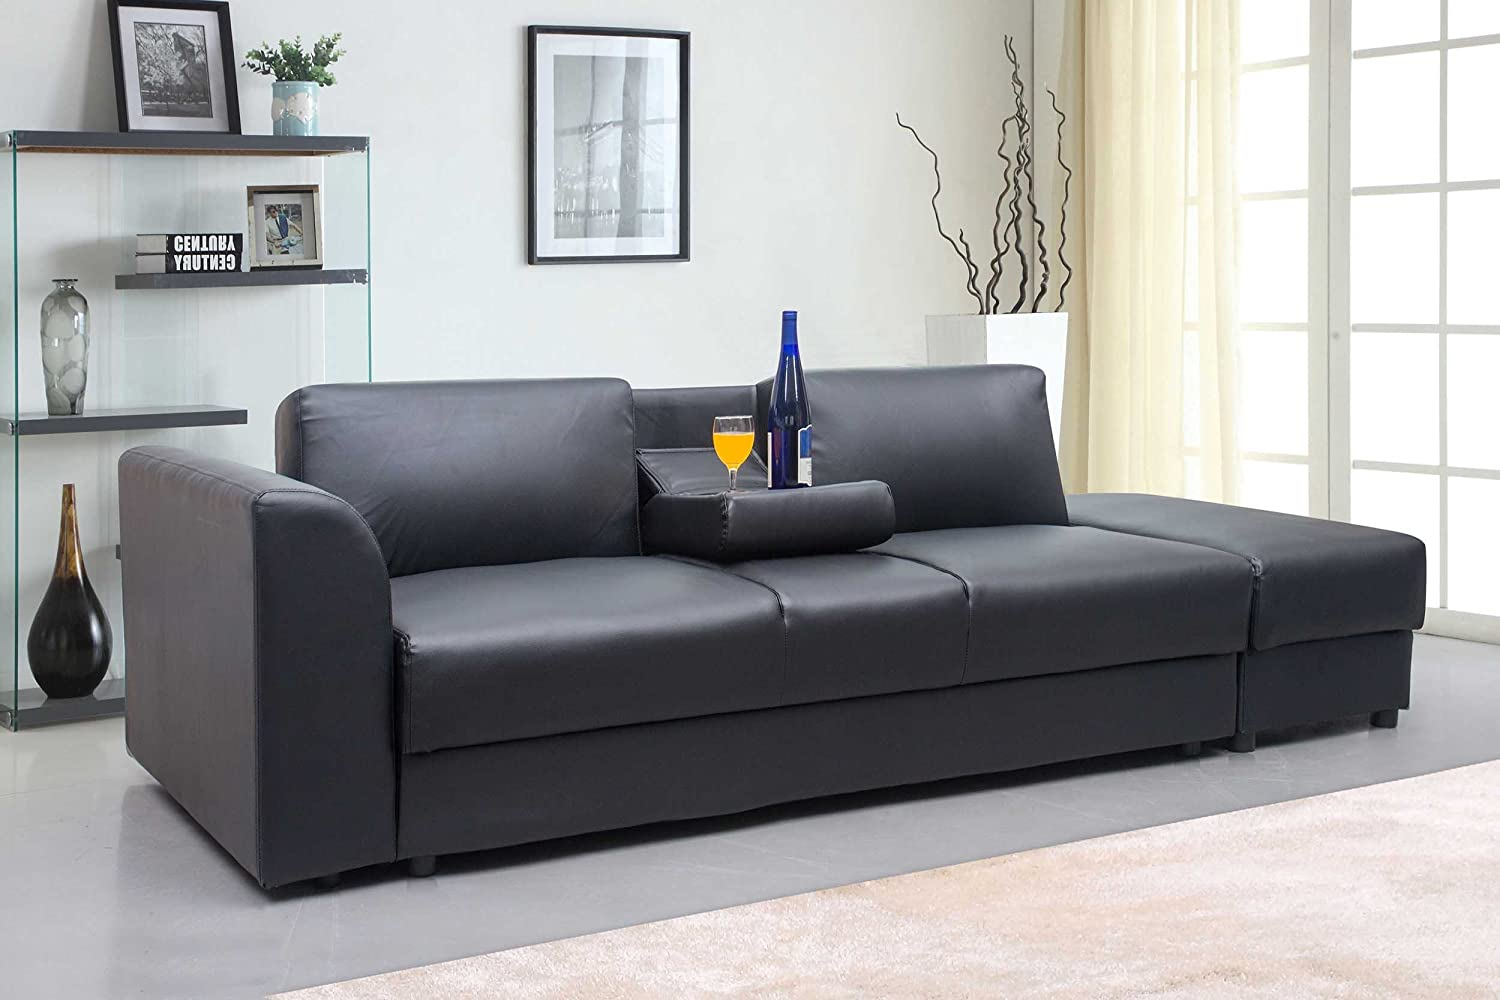 Best New Modern Faux Leather Kensington Storage Drawers Seater Sofa Bed U  Foot Stool In Black Amazoncouk Kitchen U Home With Couch Schwarz